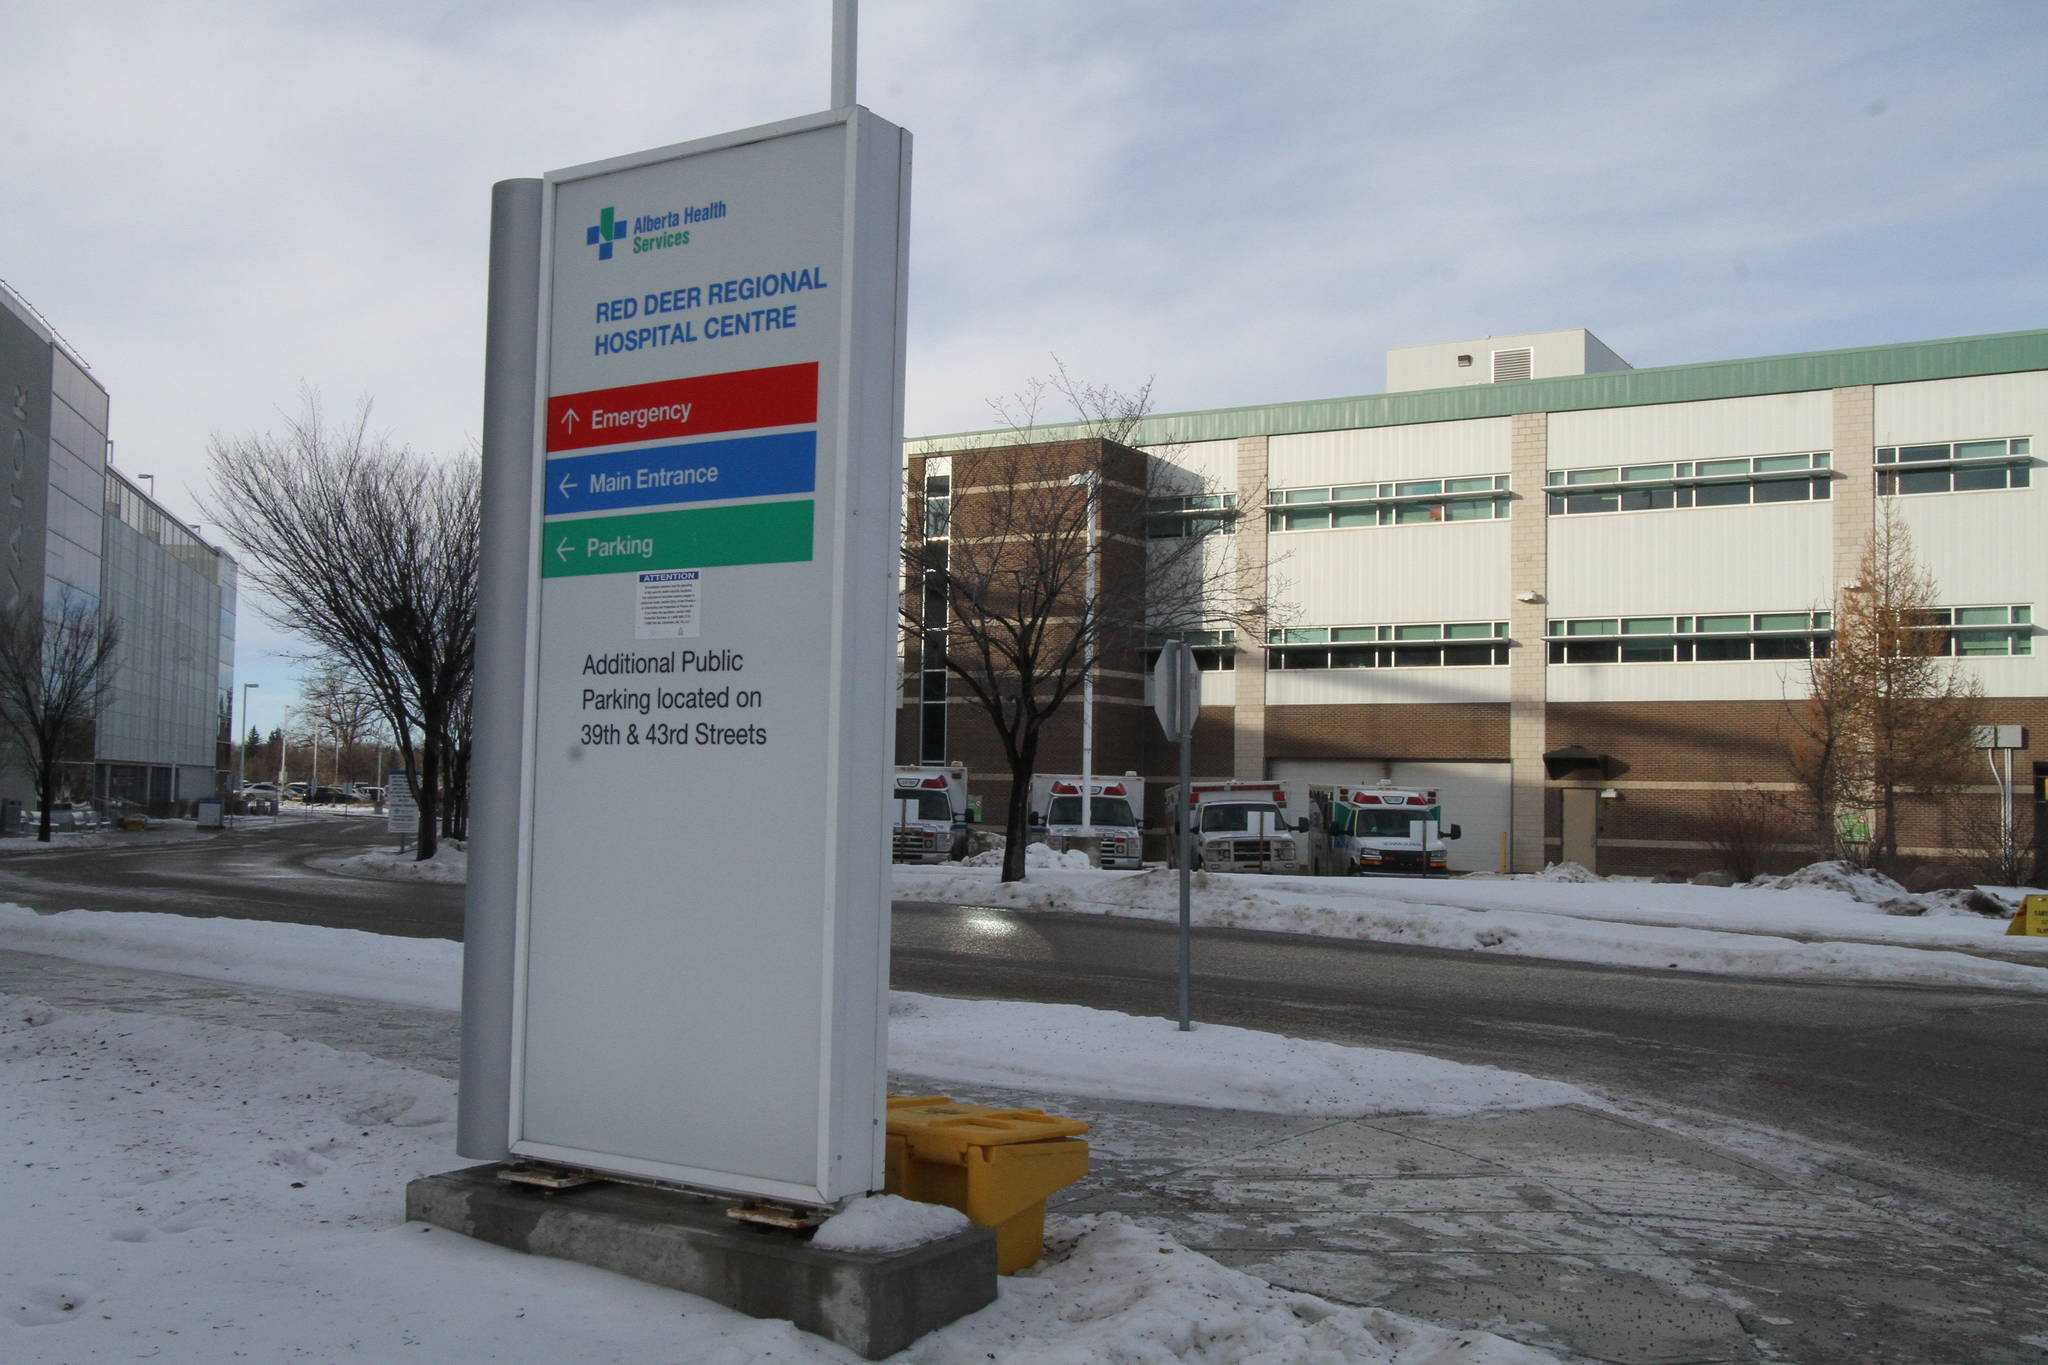 A July 2020 infrastructure report found Red Deer Regional Hospital Centre was not meeting AHS performance targets for emergency room wait times, length of stay, and had longer wait times for surgery. (File photo by Advocate staff)